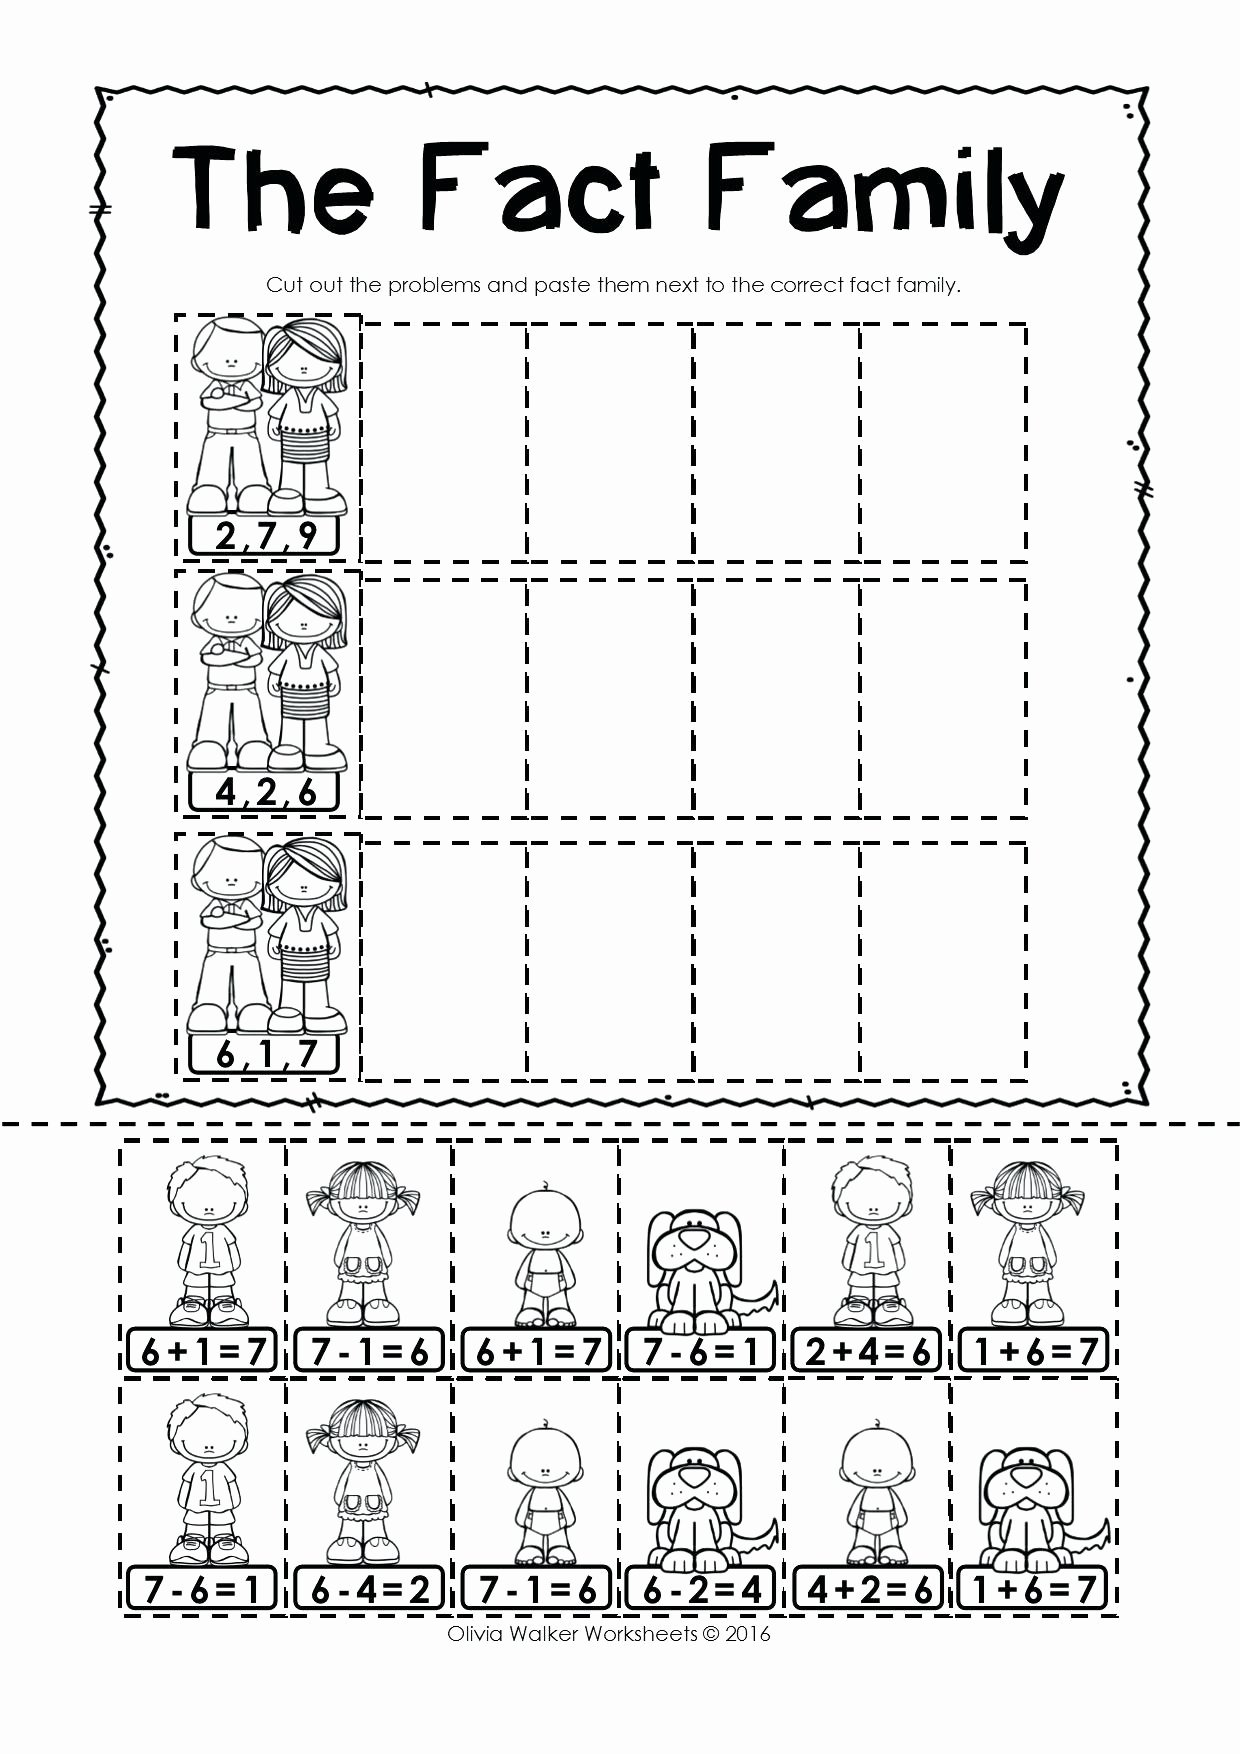 Family Worksheets for Preschoolers Awesome Worksheet Esl Interactive Vocabulary Games Adding Practice